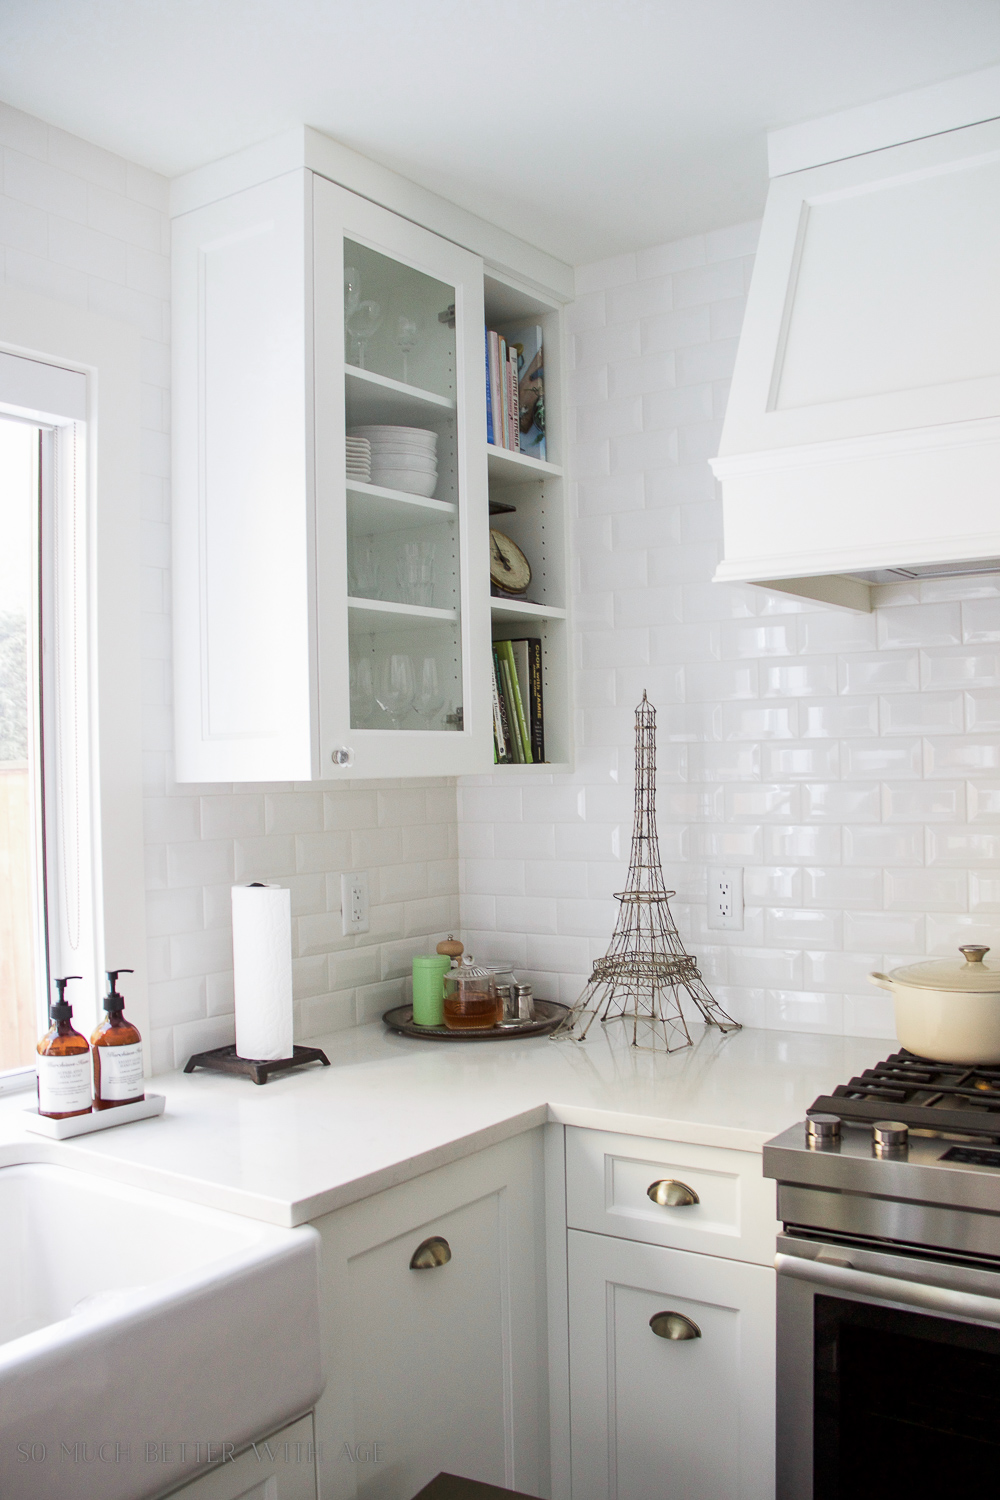 Kitchen renovation, subway tile, farmhouse sink/ My Big Beautiful Kitchen Renovation - Before and After Photos